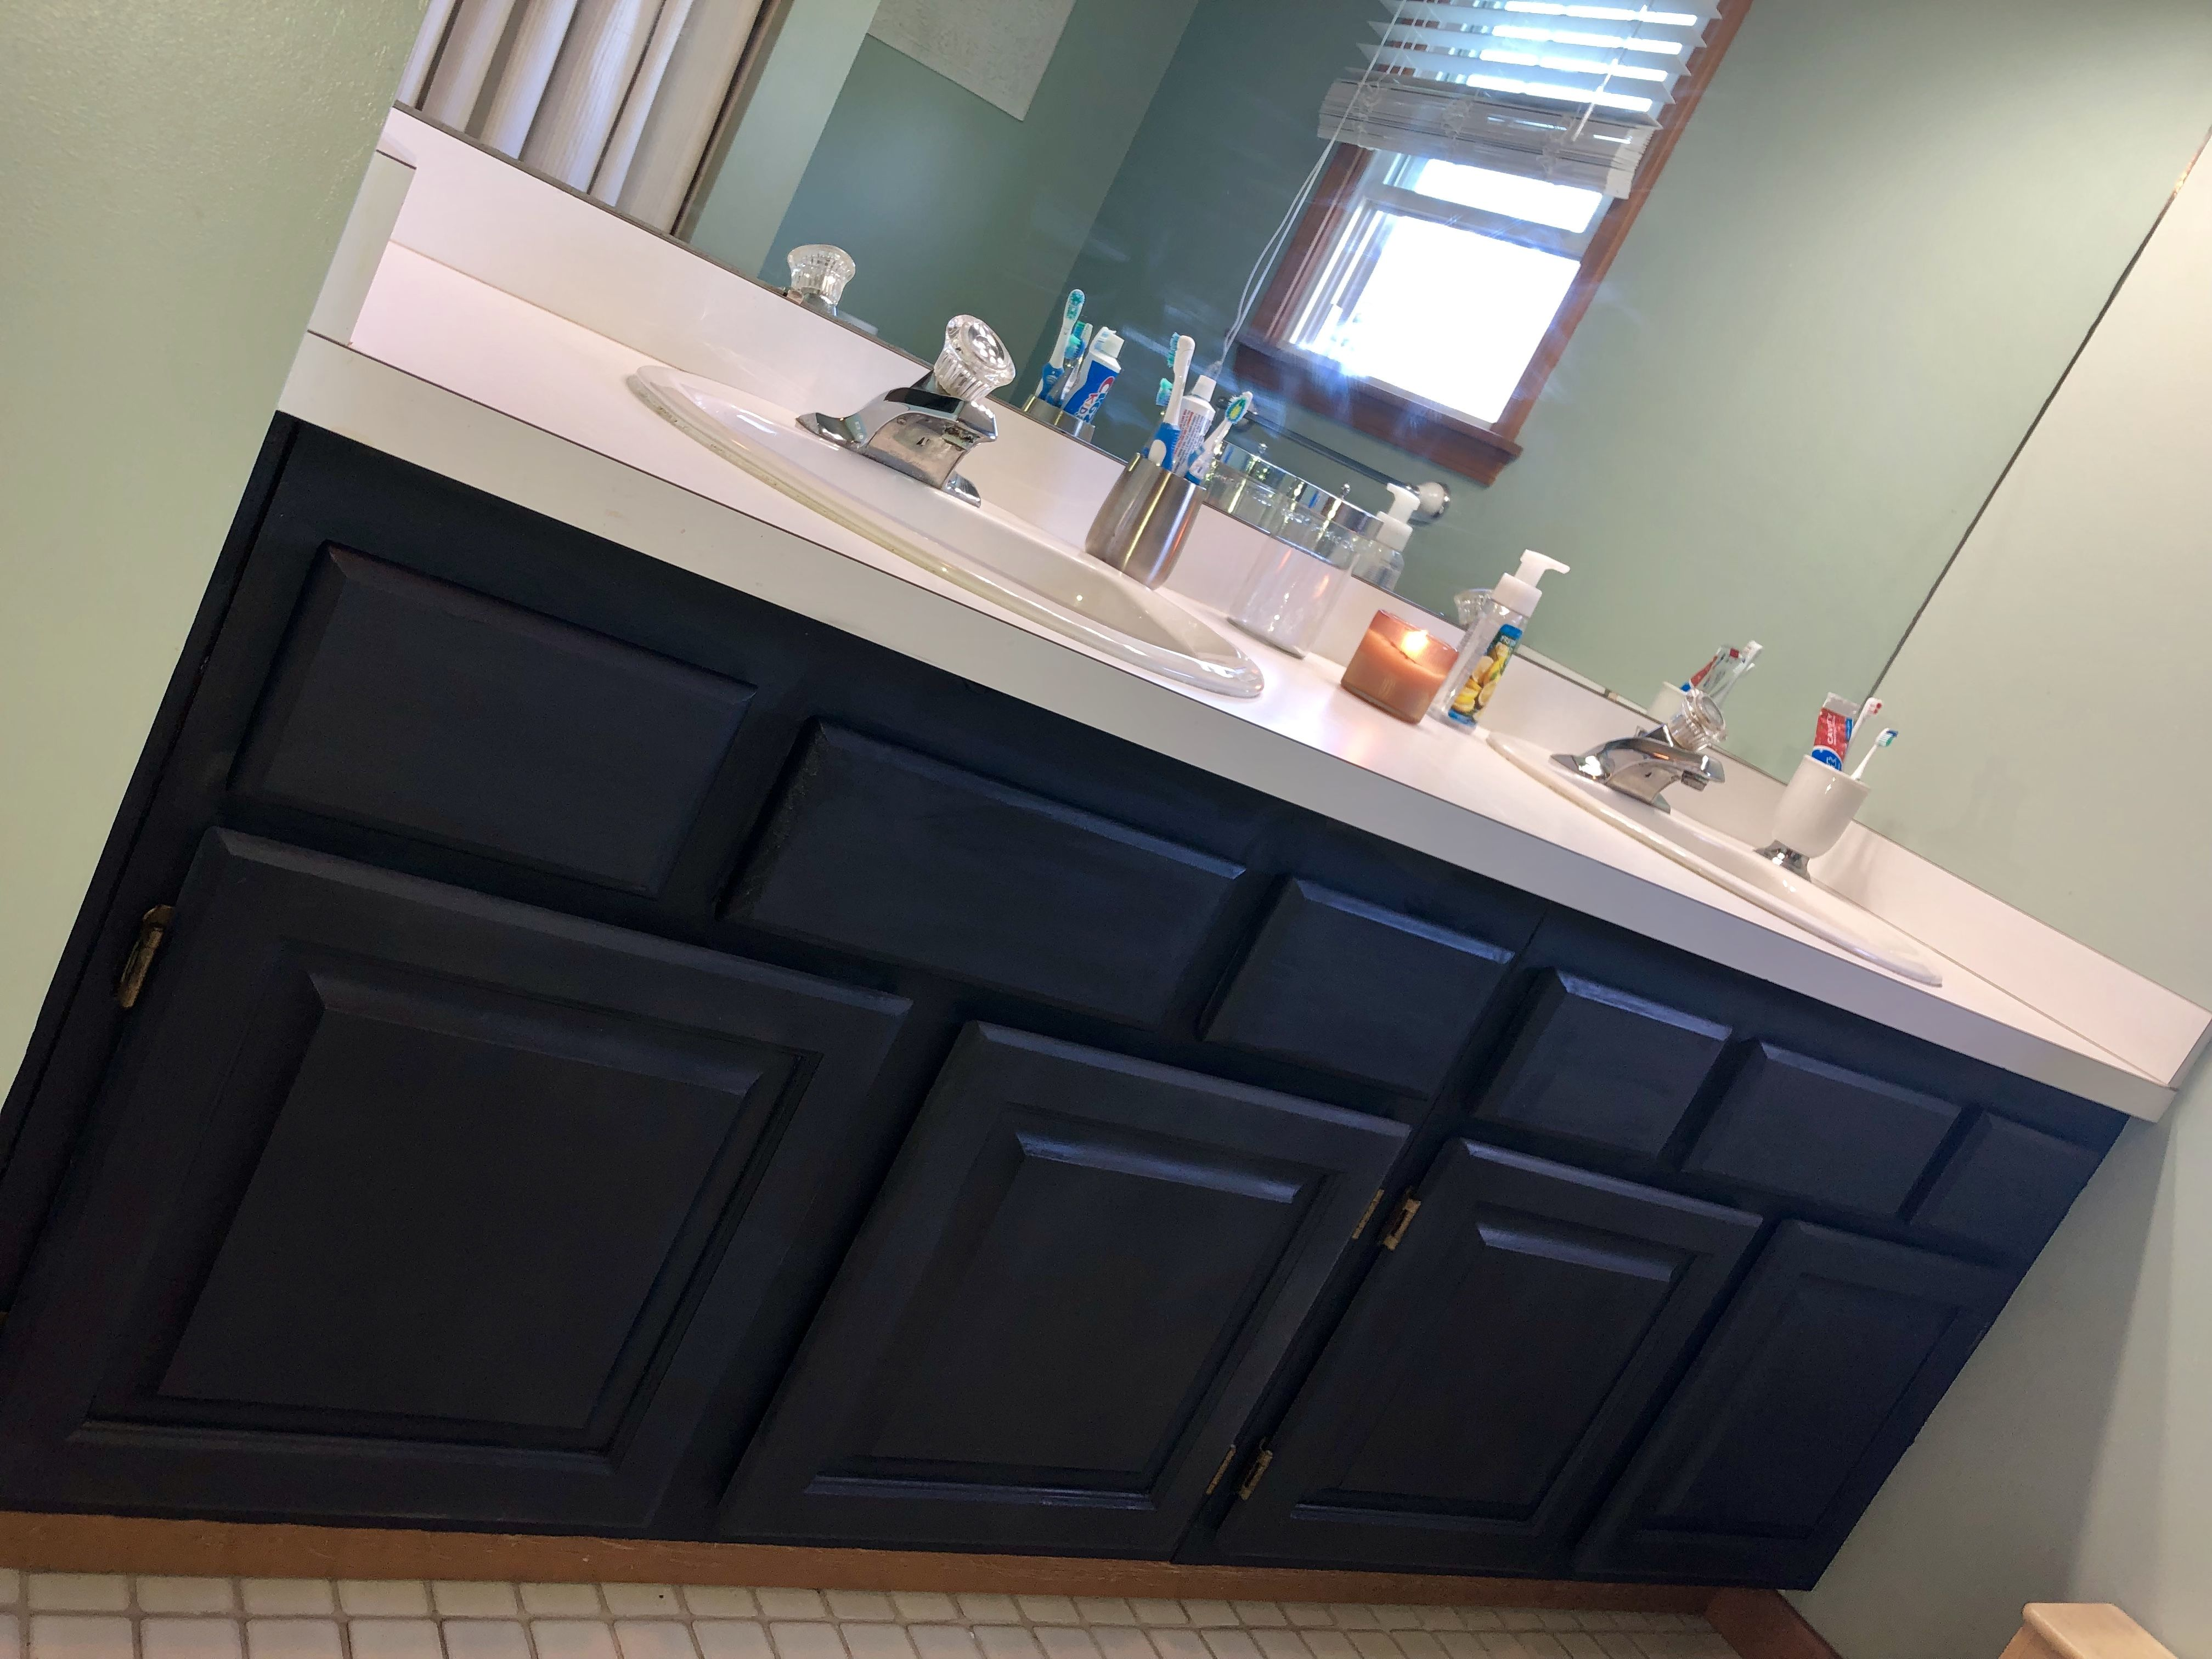 Rustoleum Chalk Paint In Charcoal Oak Bathroom Vanity Rustoleum Chalk Paint Rustoleum